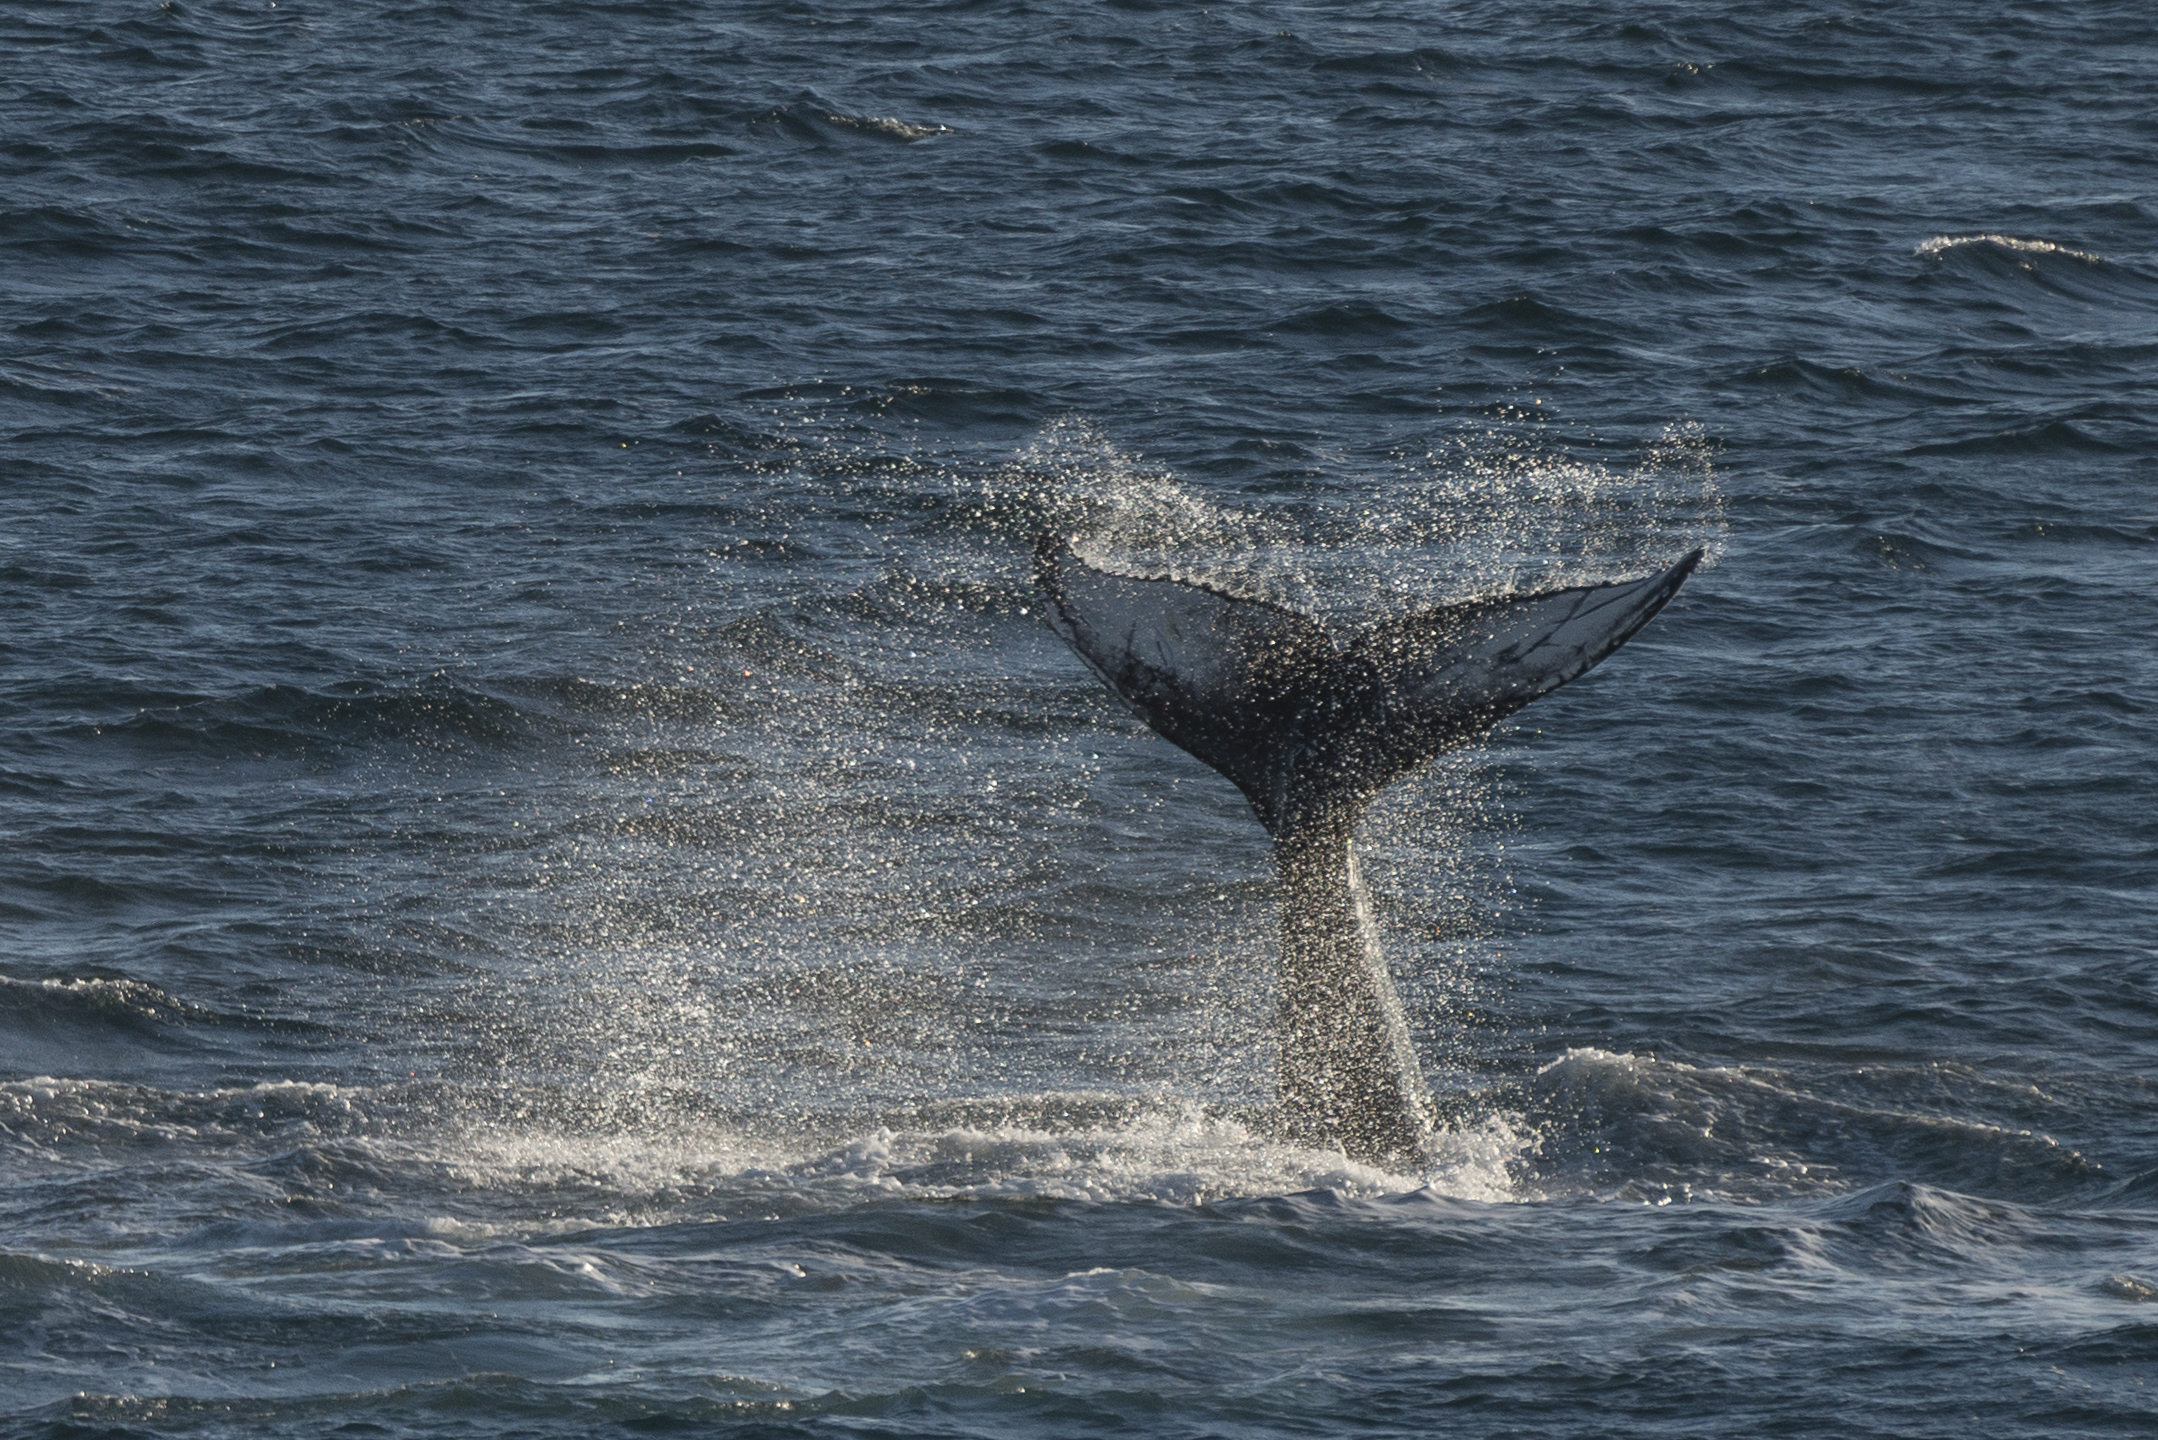 A photograph of the humpback whale in the Arctic was found by volunteer citizen scientists (Iain Rudkin Photography/PA)